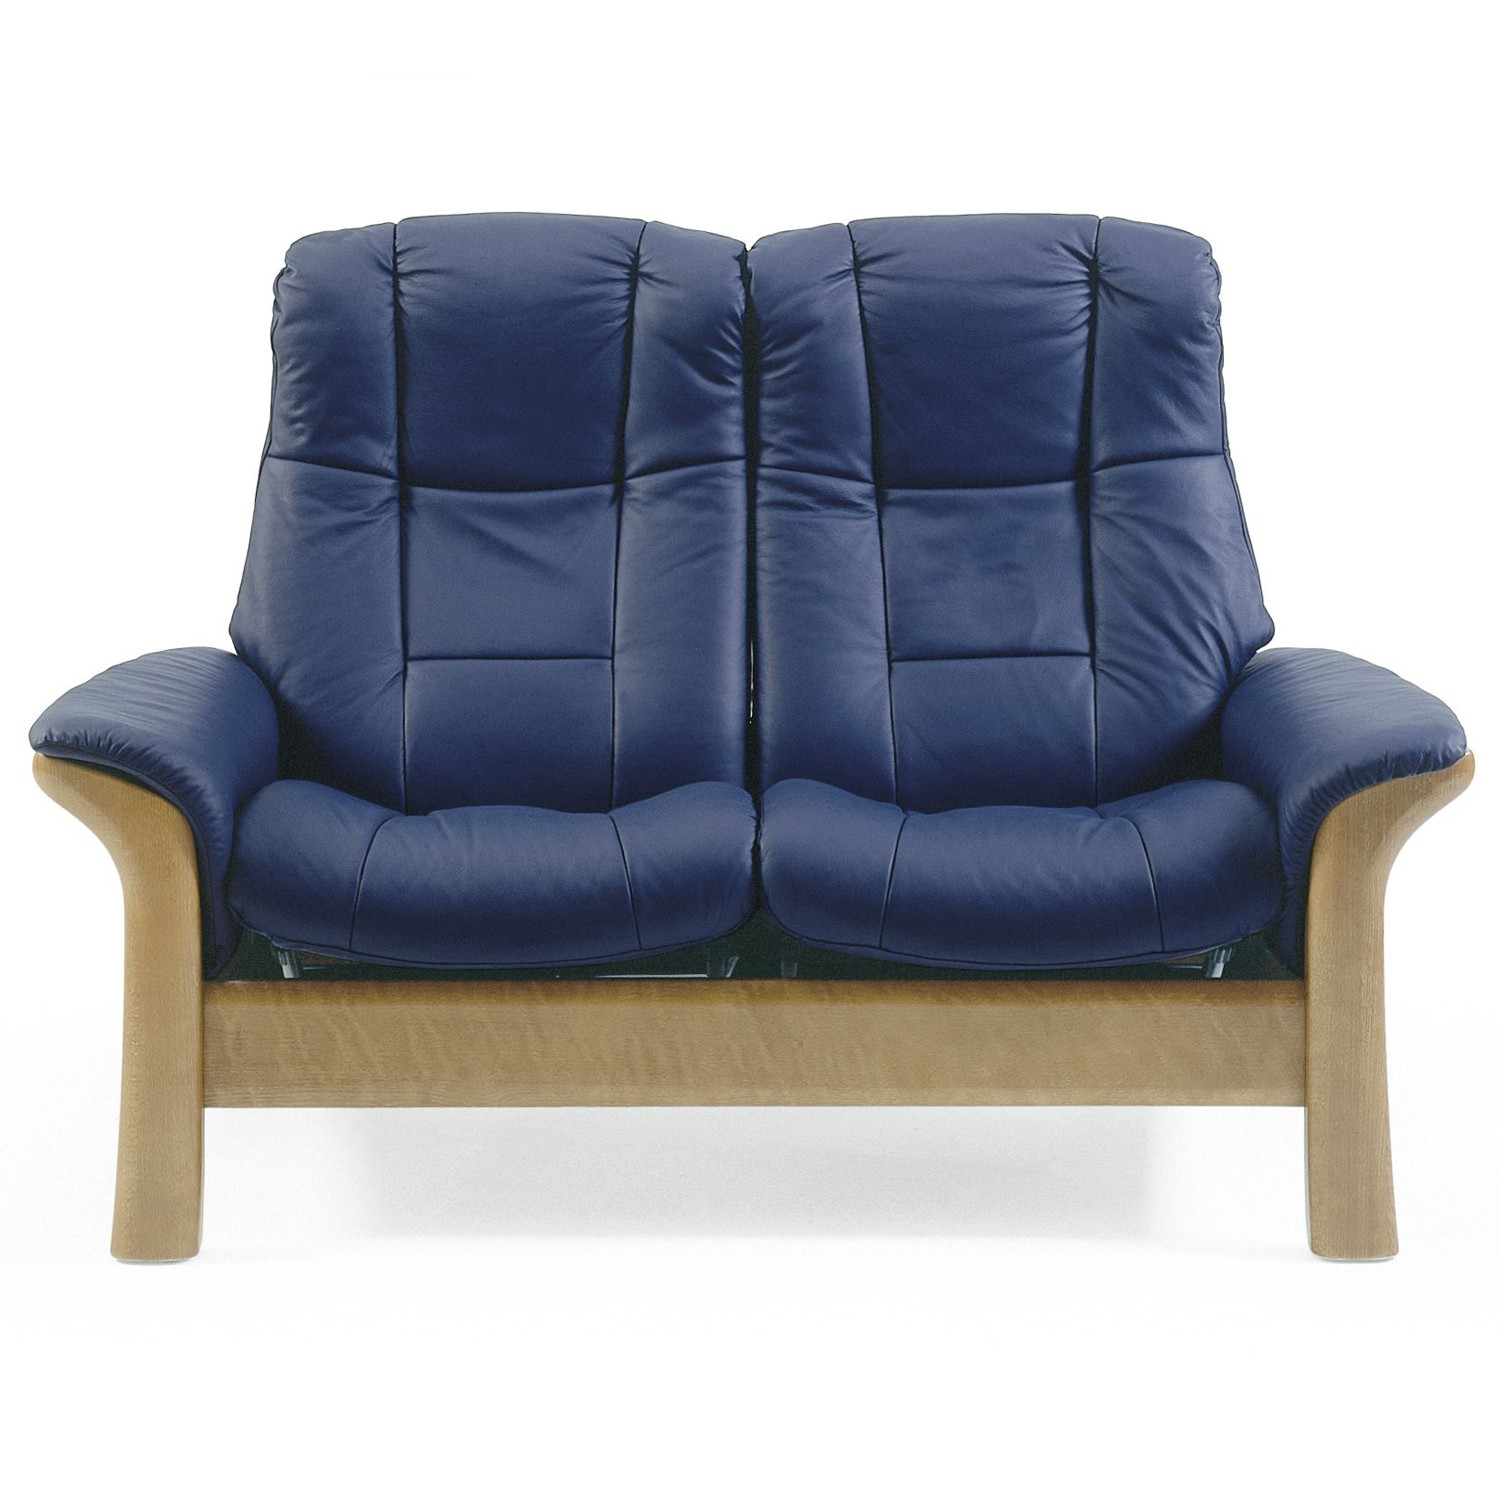 Stressless Windsor High Back 2 Seater Sofa